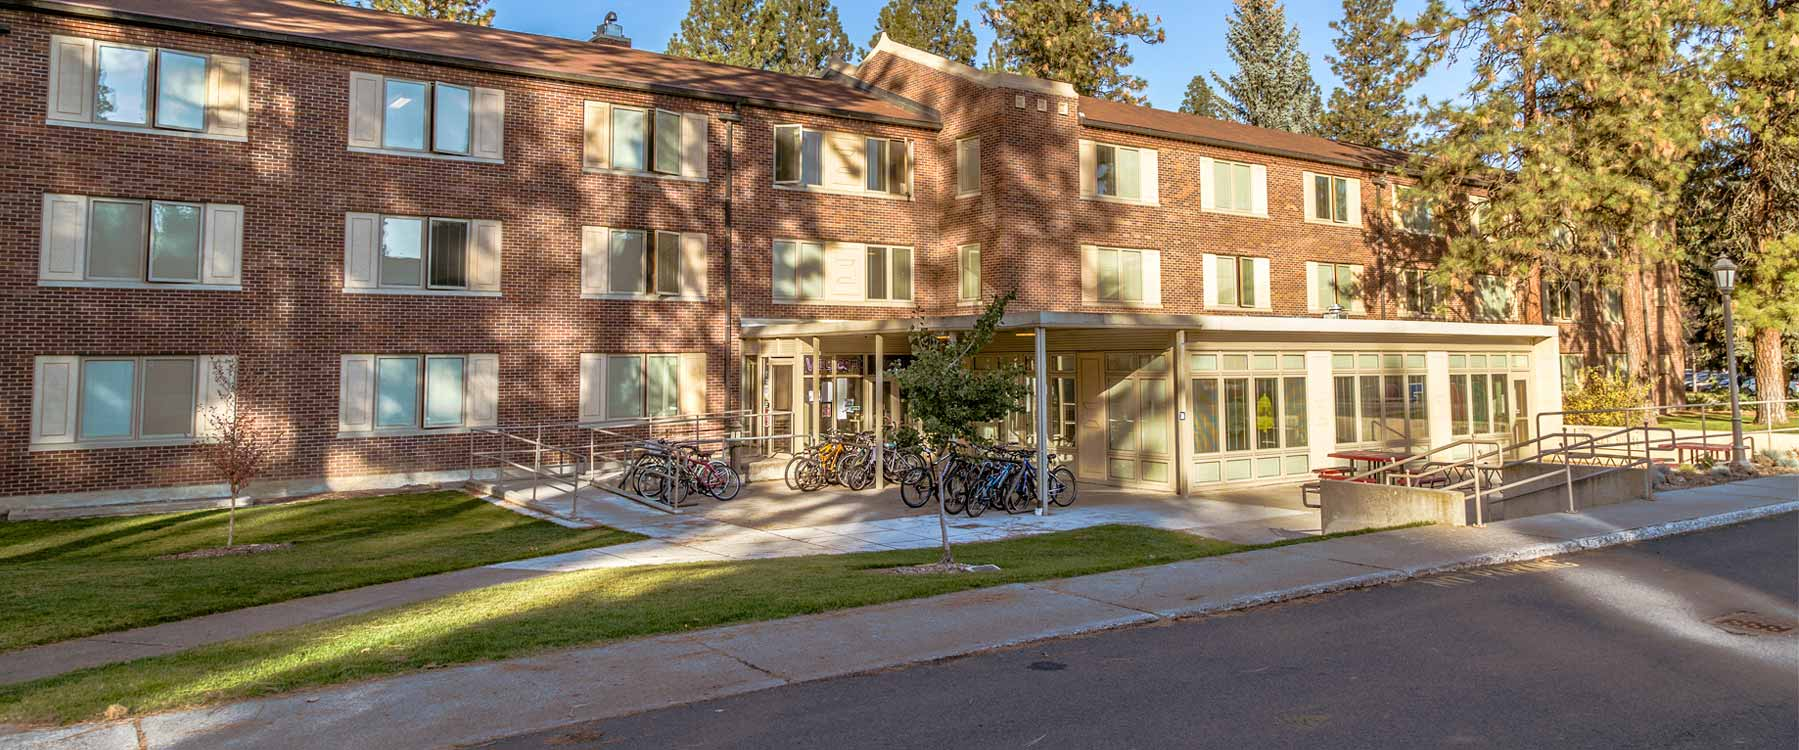 Arend Hall | Residence Life & Housing | Whitworth University